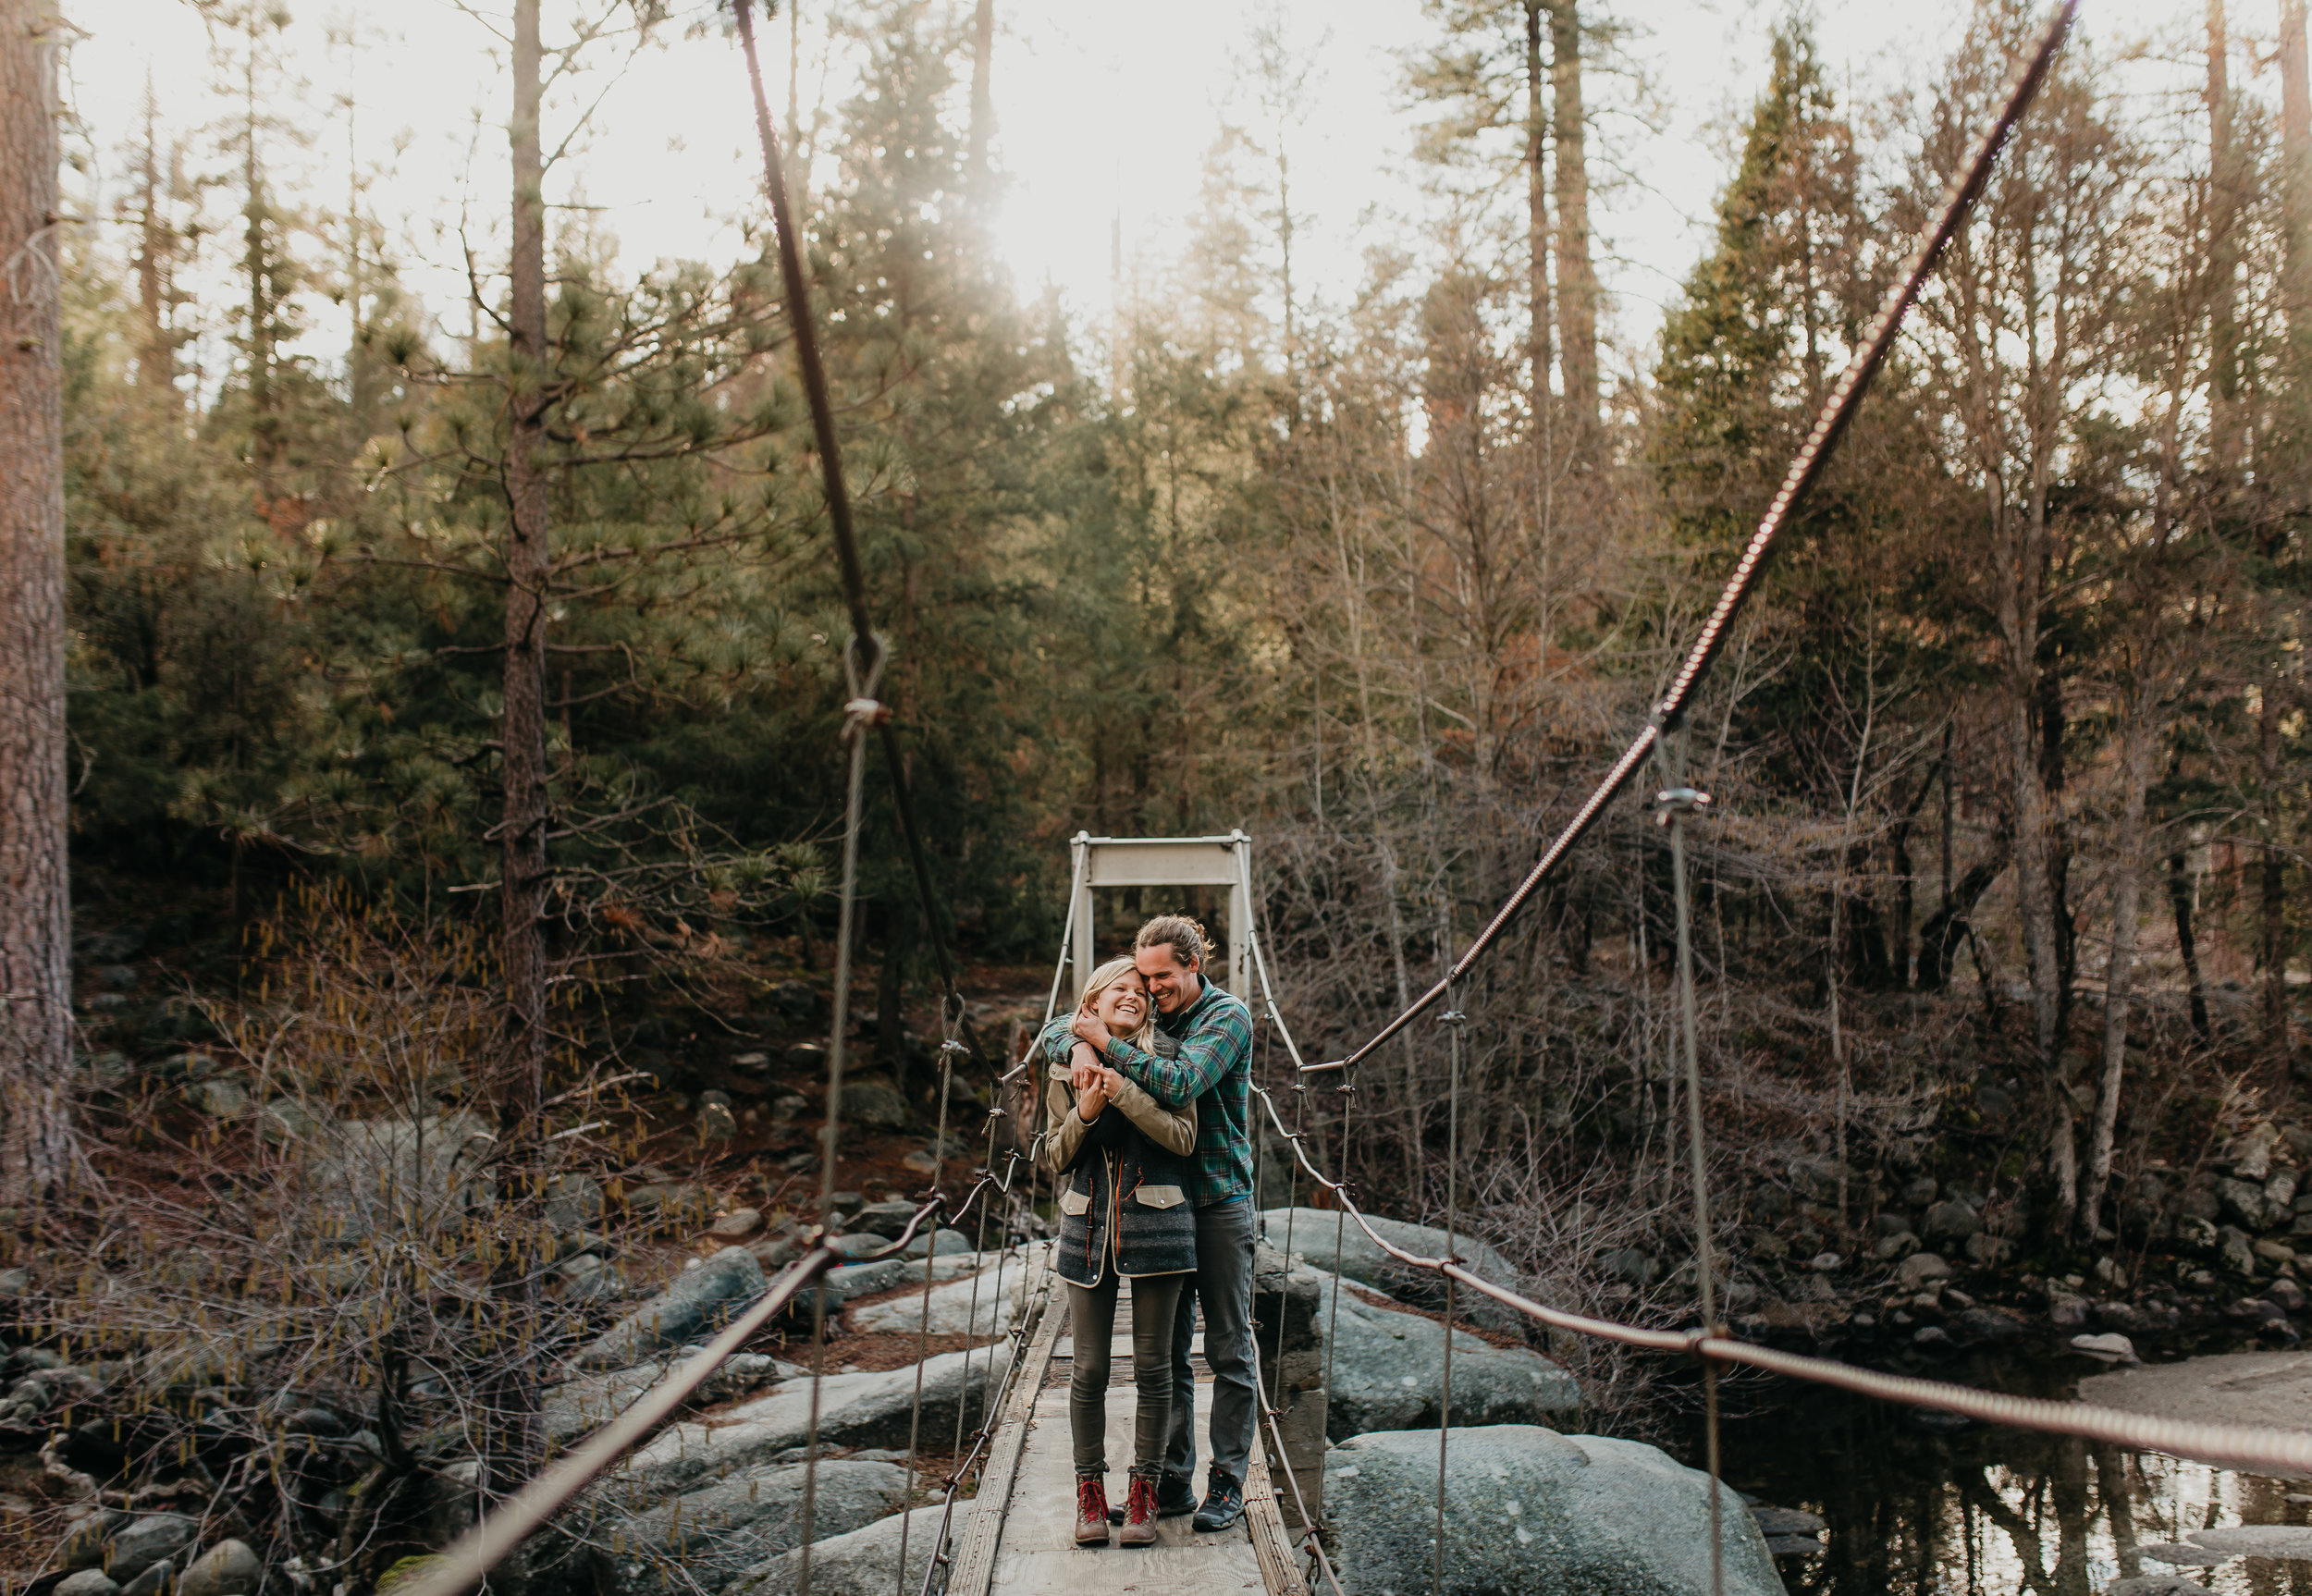 nicole-daacke-photography-yosemite-riverside-adventurous-engagement-photos-in-yosemite-national-park-elopement-photographer-weddings-travel-destination-wedding-eloping-elope-pine-forest-36.jpg